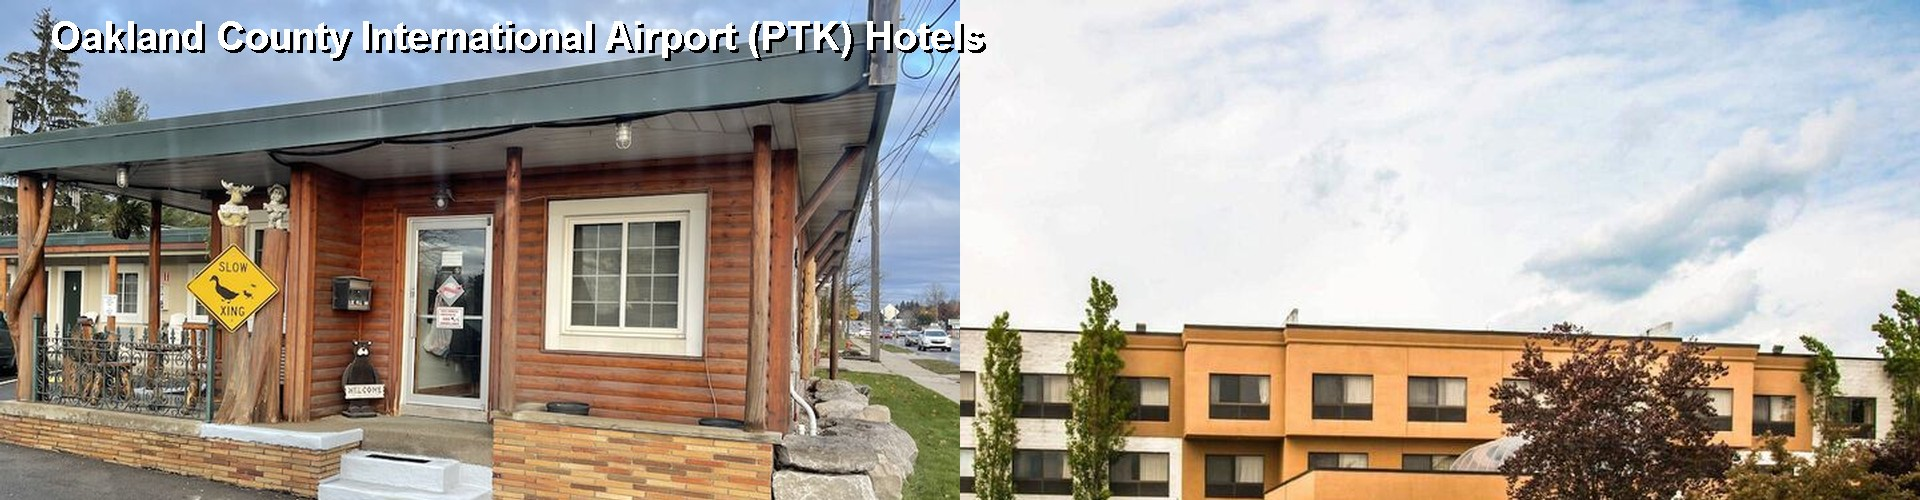 5 Best Hotels near Oakland County International Airport (PTK)